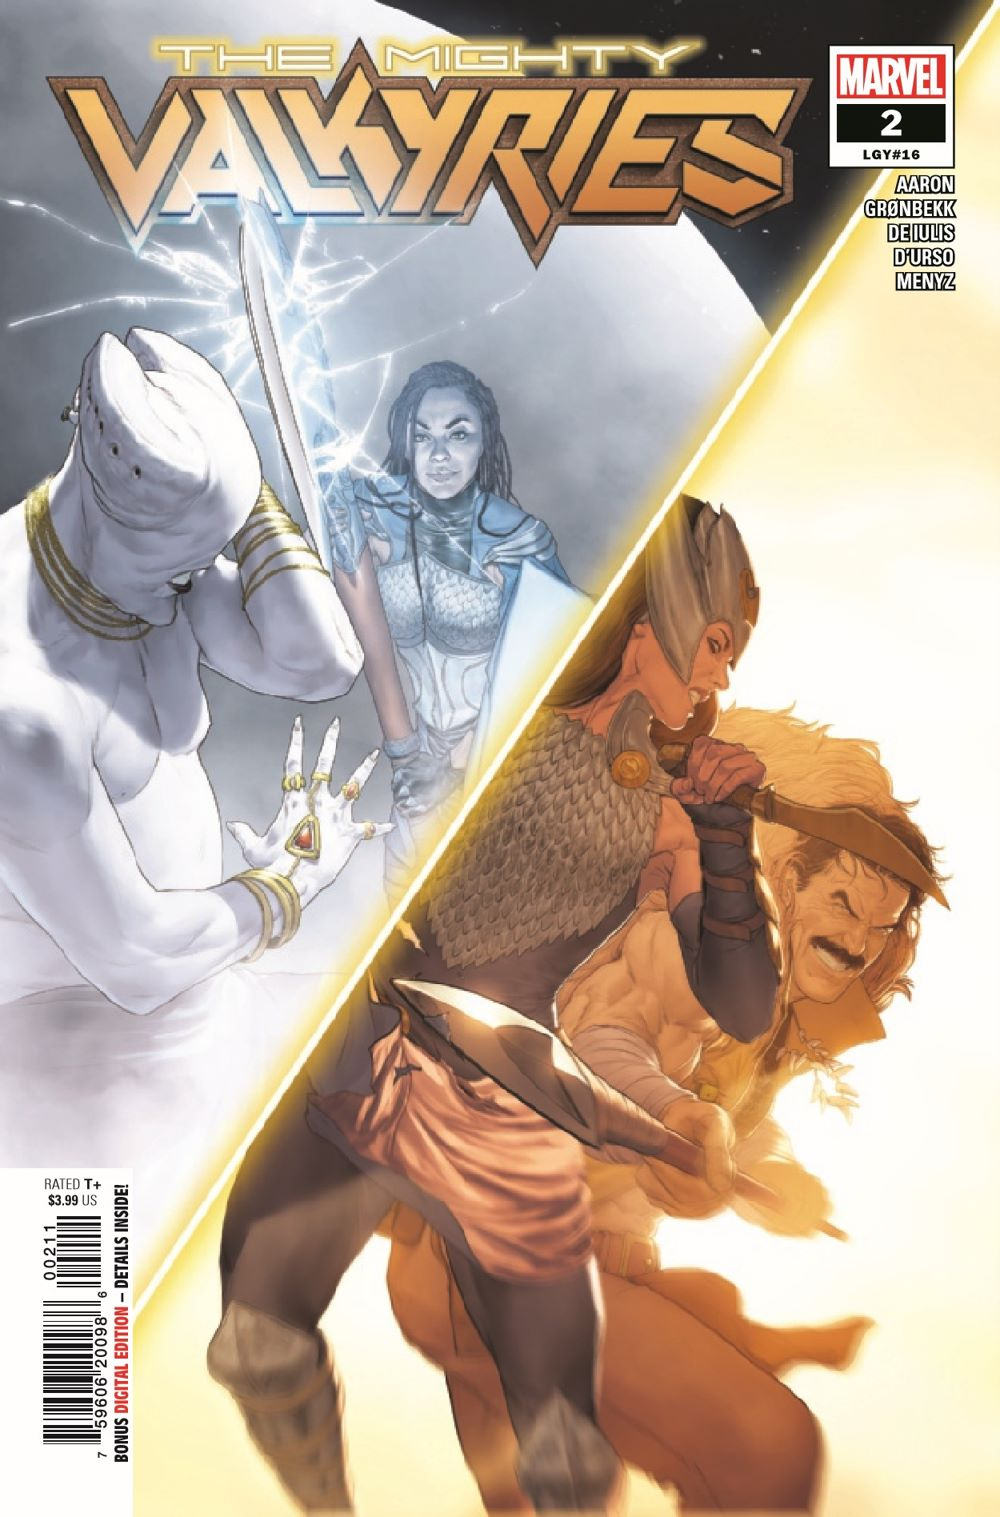 MIGHTYVALKYRIES2021002_Preview-1 ComicList Previews: THE MIGHTY VALKYRIES #2 (OF 5)